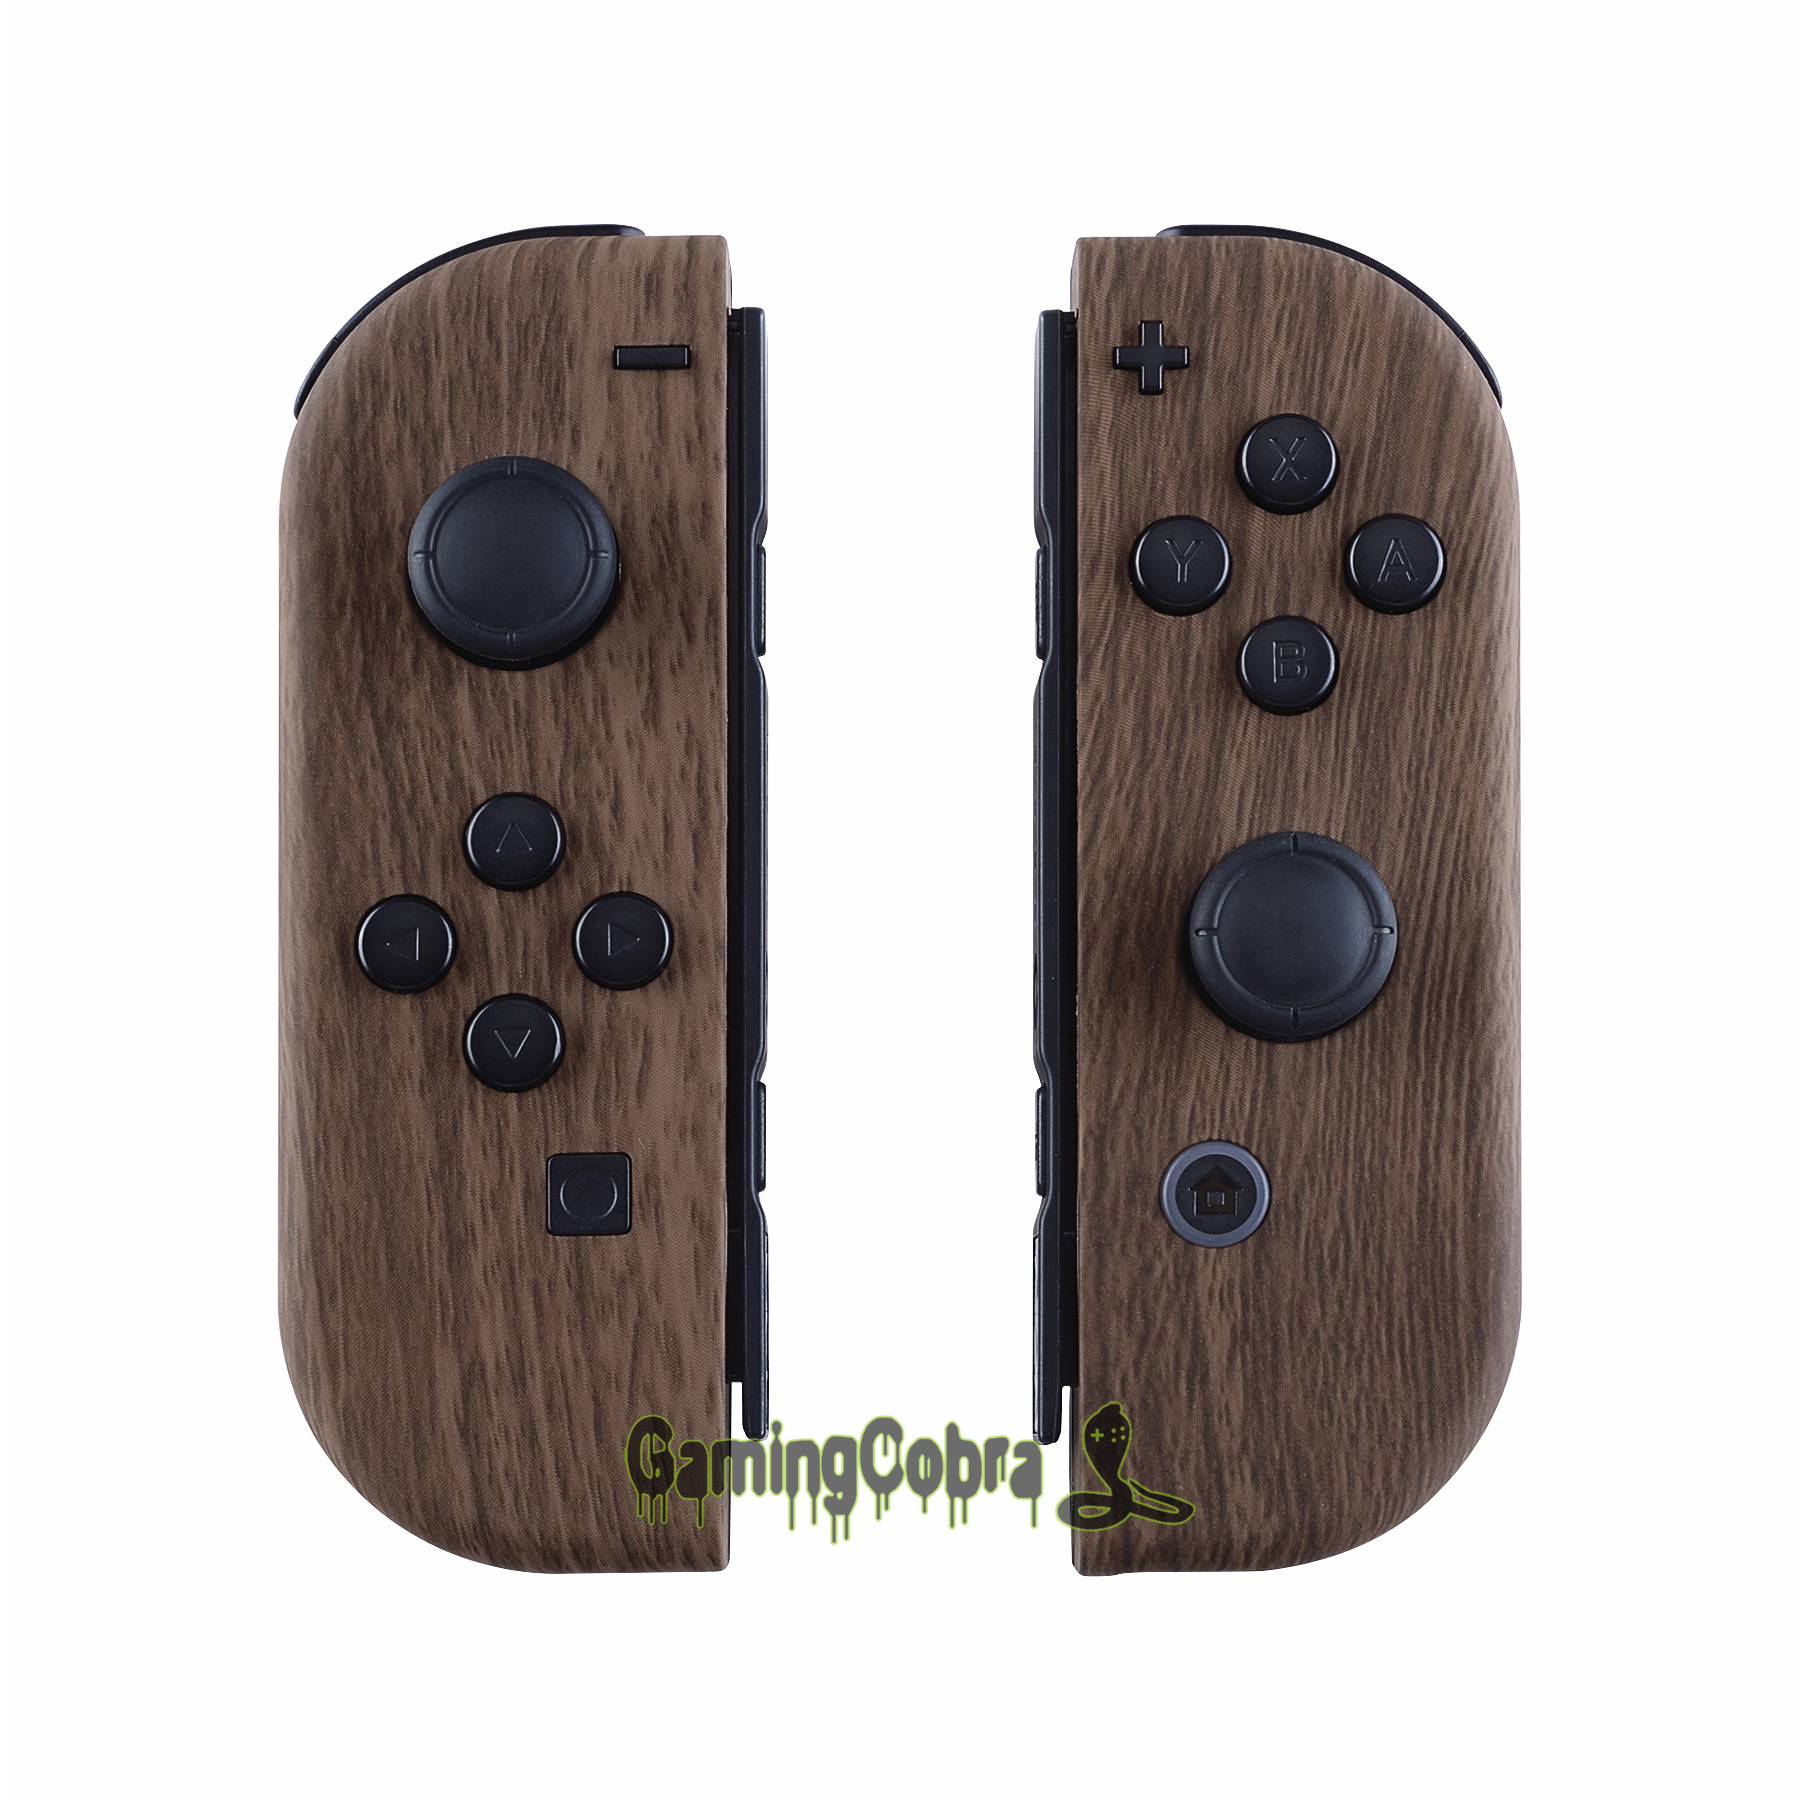 Wood Grain Soft Touch Controller Housing With Full Set Buttons DIY Replacement Shell Case For Nintendo Switch Joy-Con - CS201